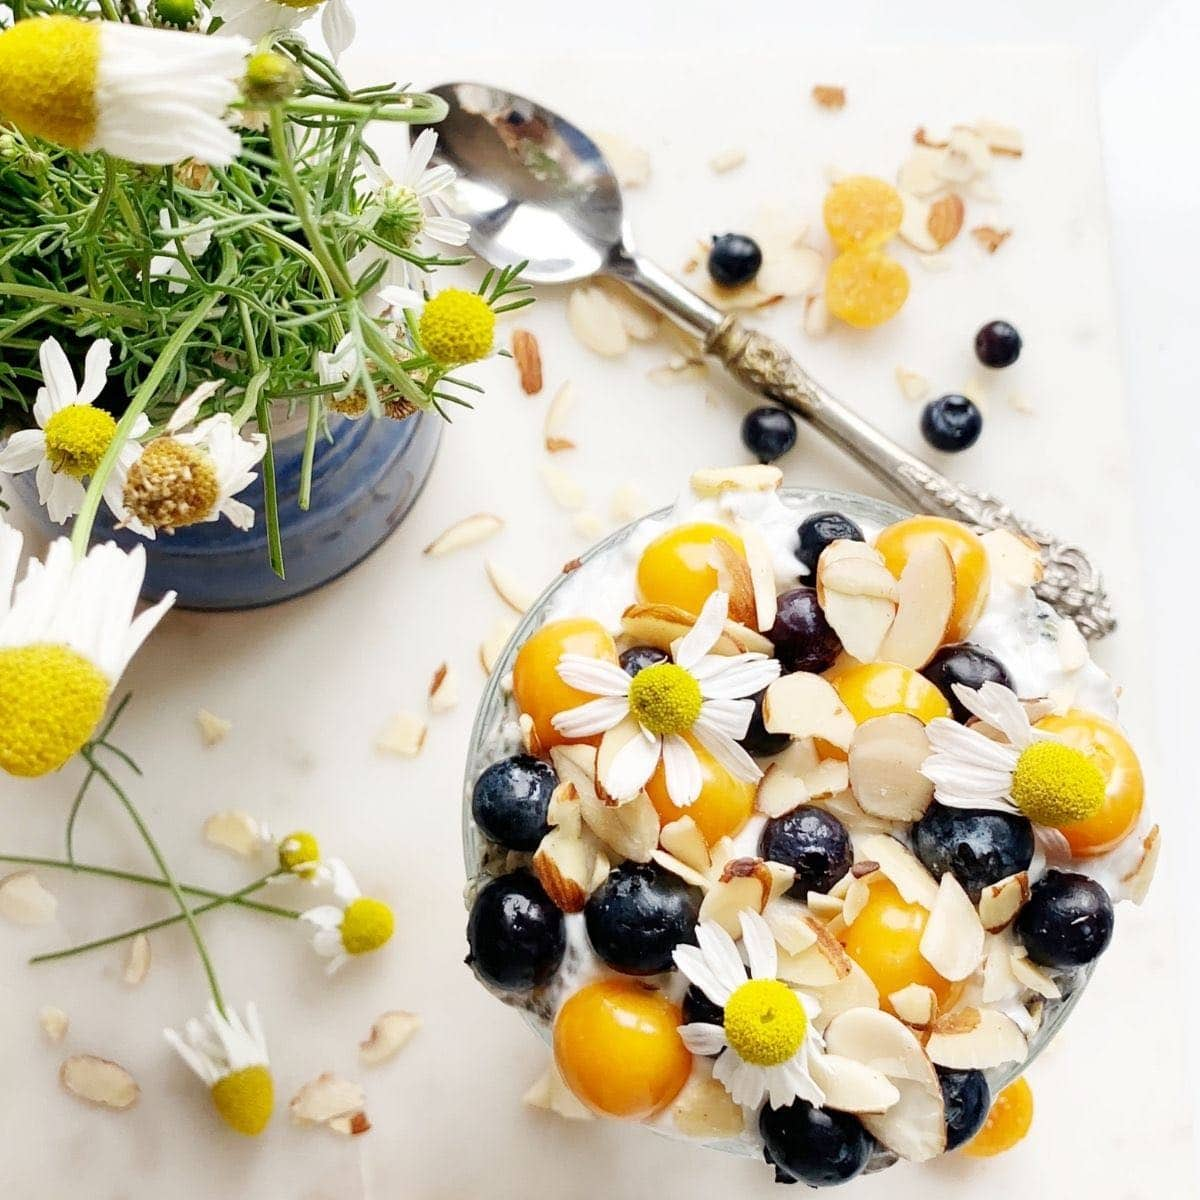 Overhead shot of golden berry chia parfait topped with blueberries, almonds, and chamomile flowers.